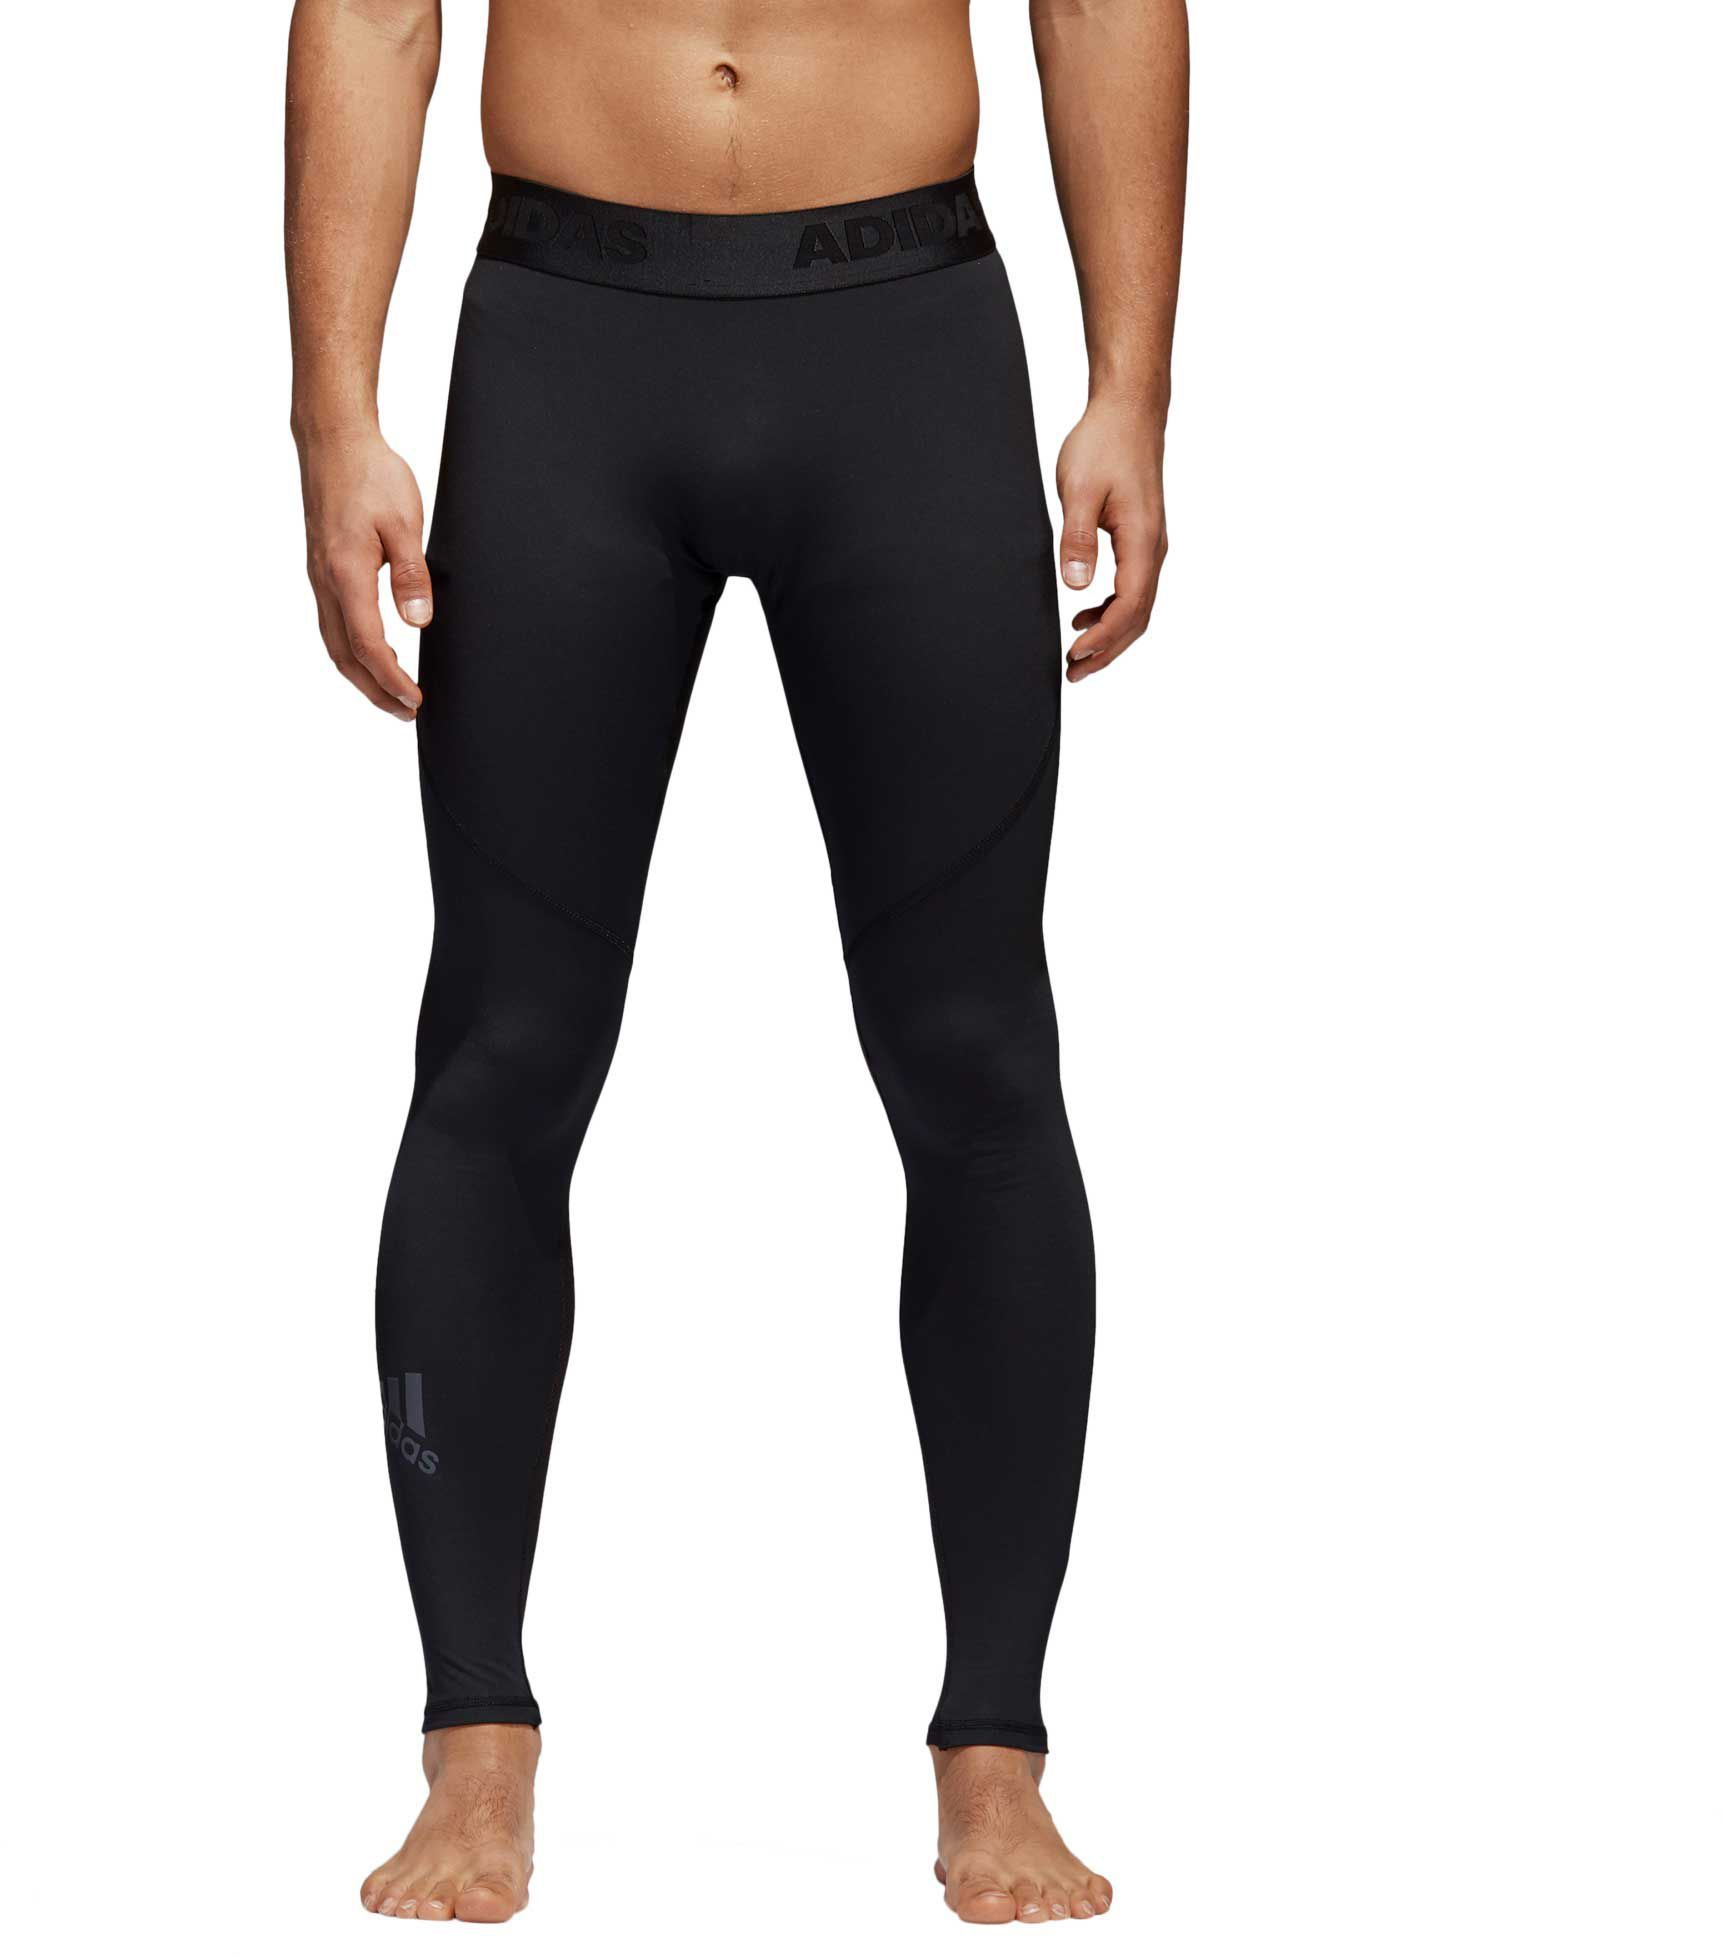 435ca1ed49 adidas Men's Alphaskin Sport Training Tights in 2019 | Products